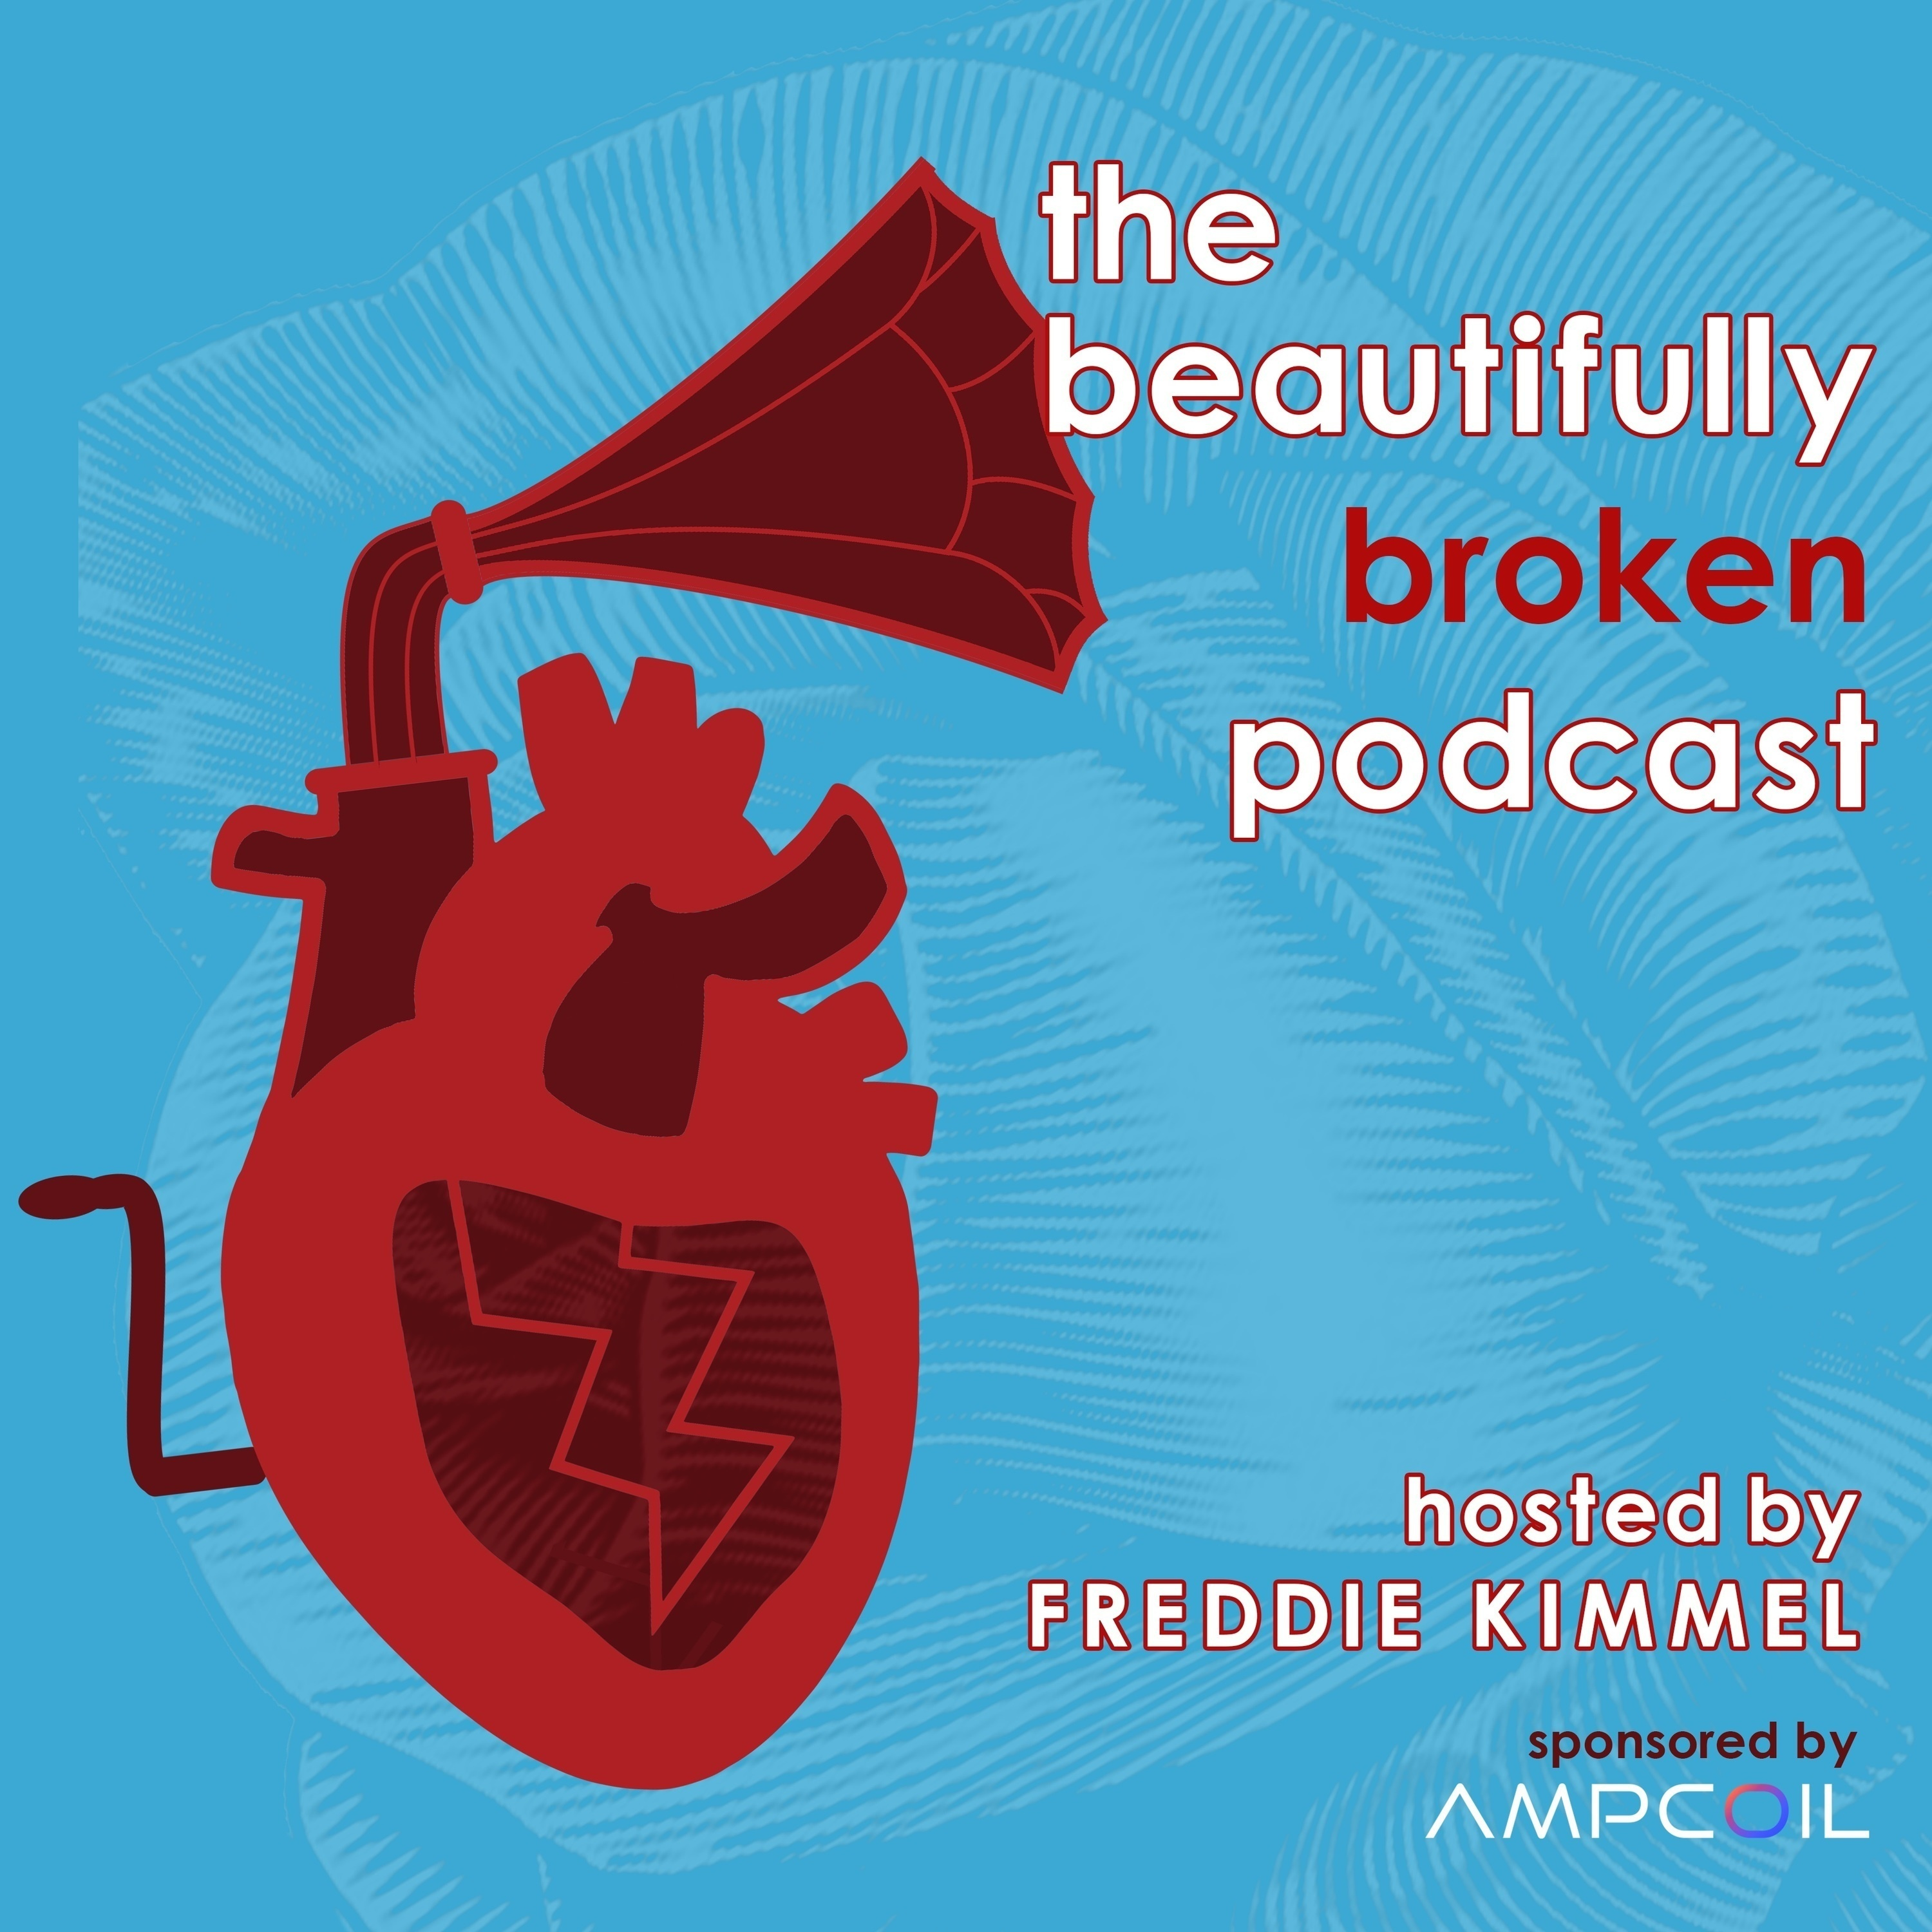 The Beautifully Broken Podcast